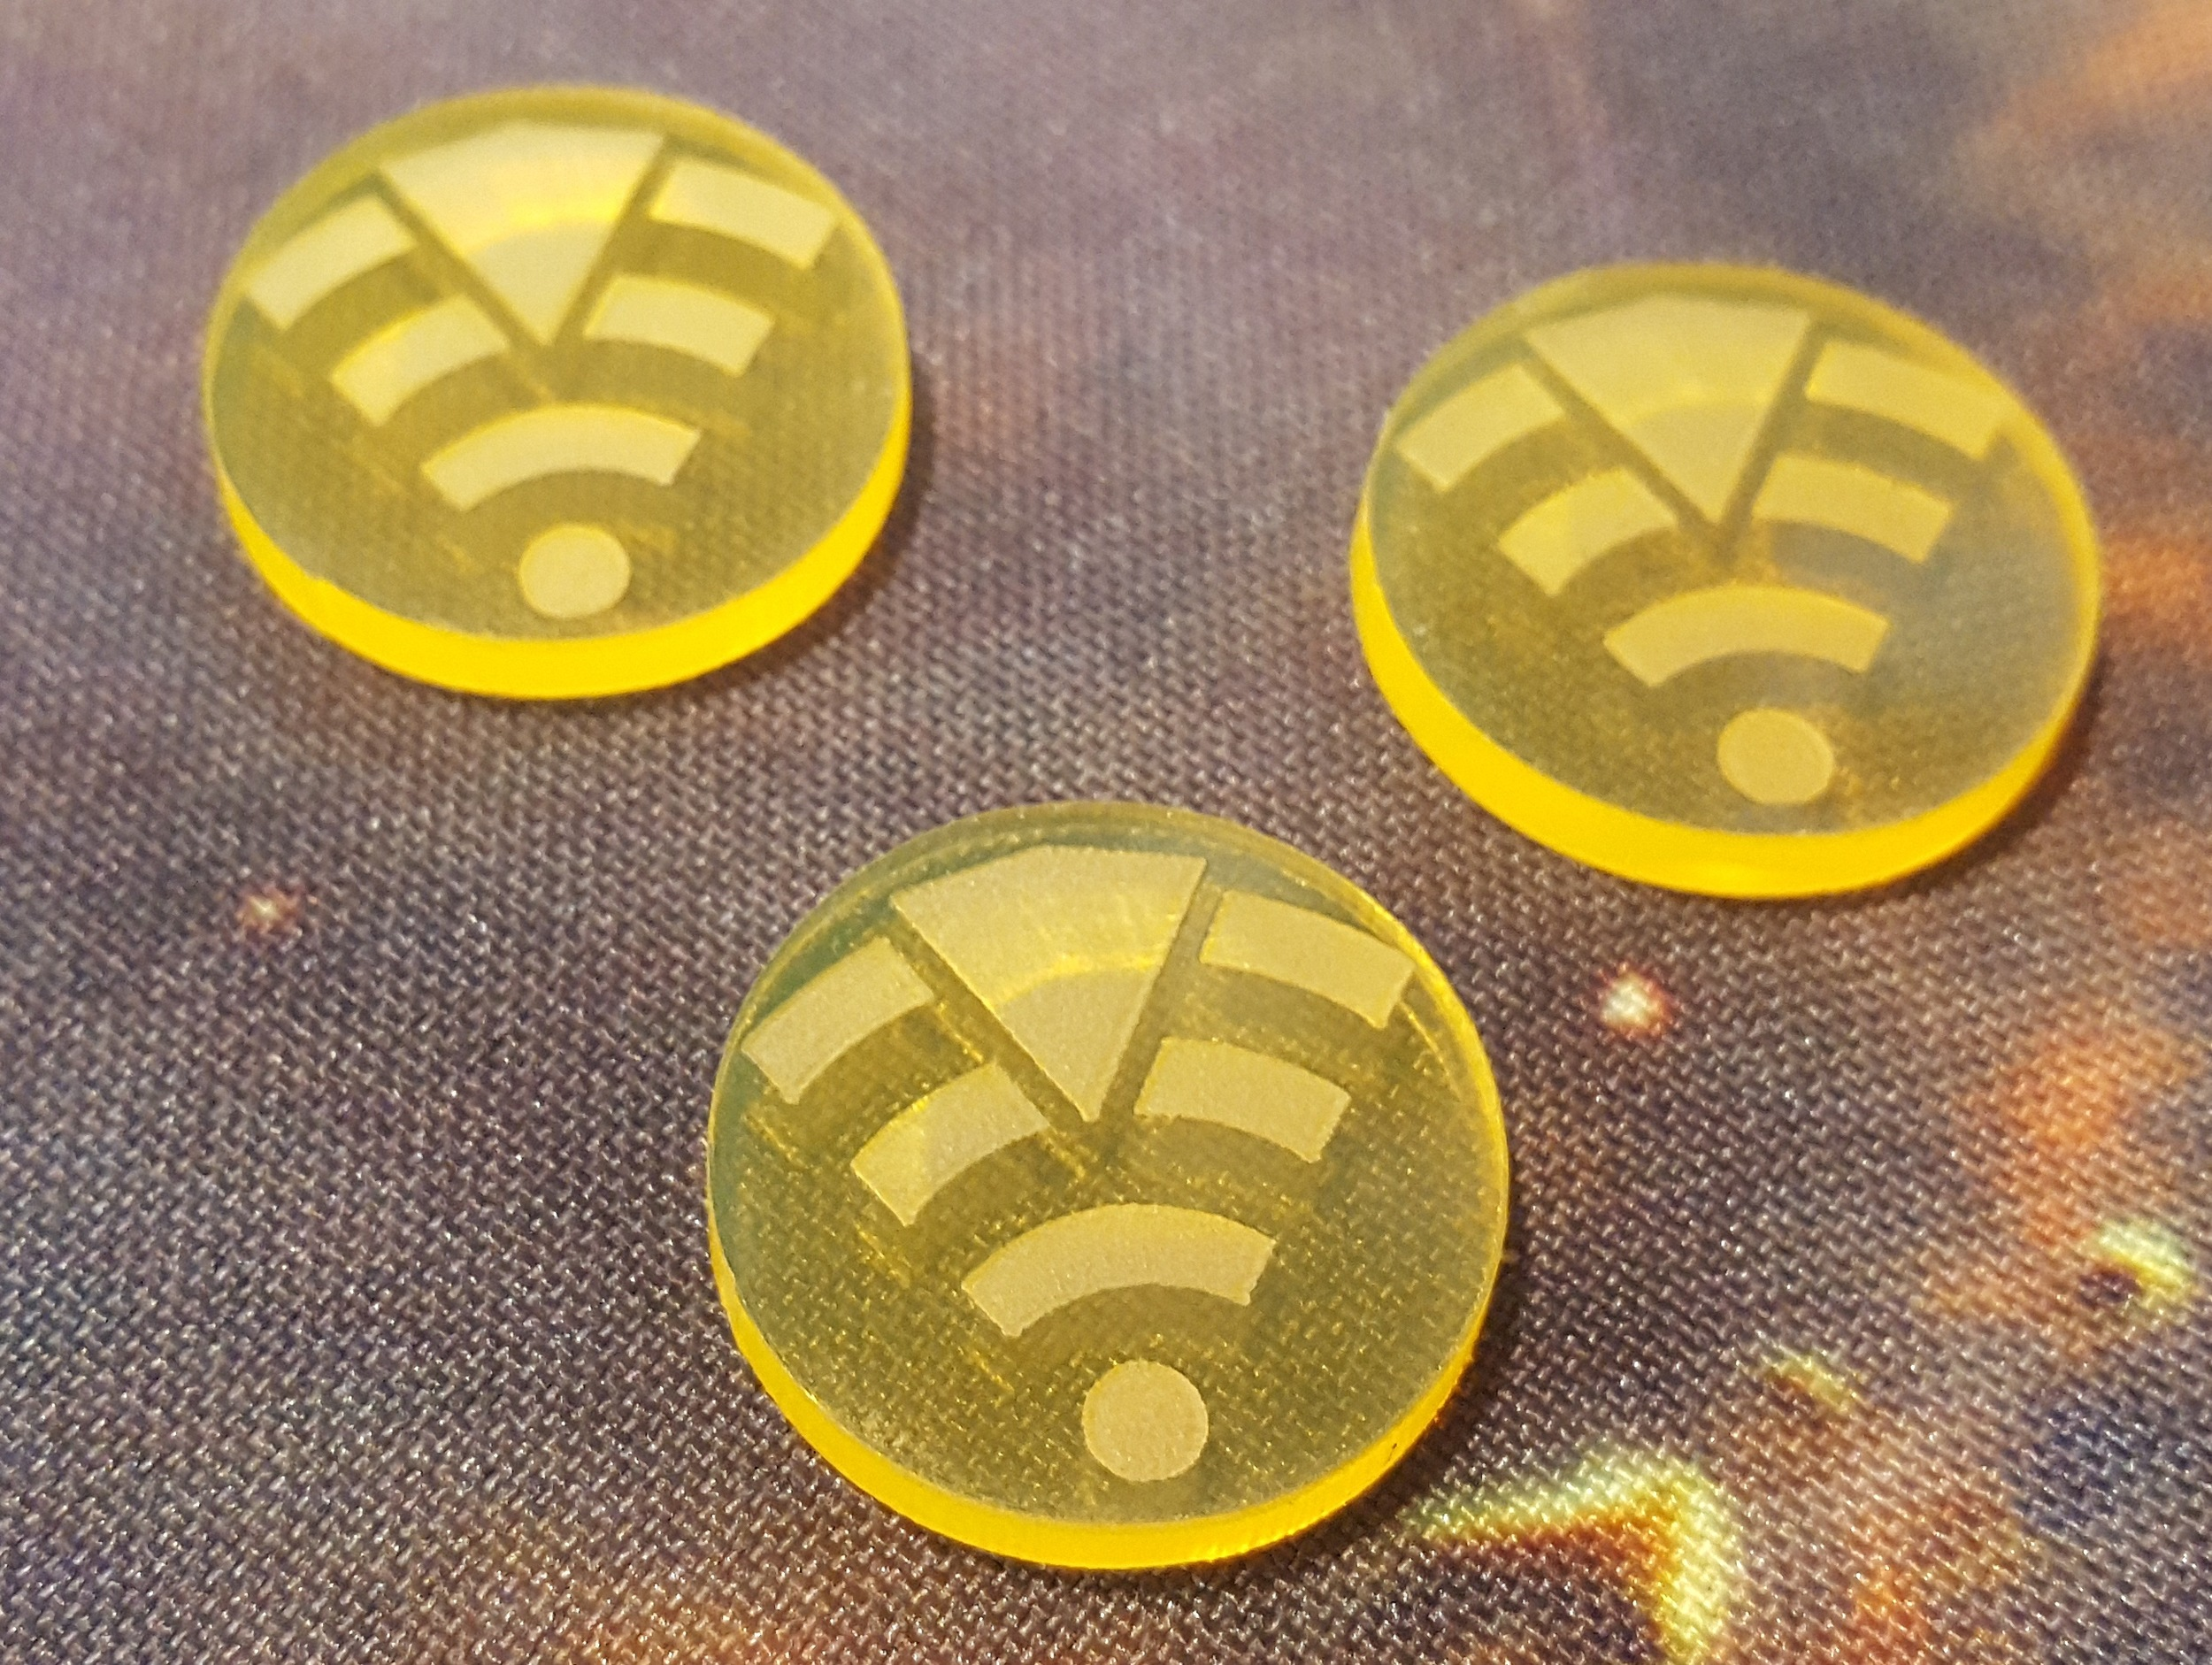 Tractor Beam Tokens